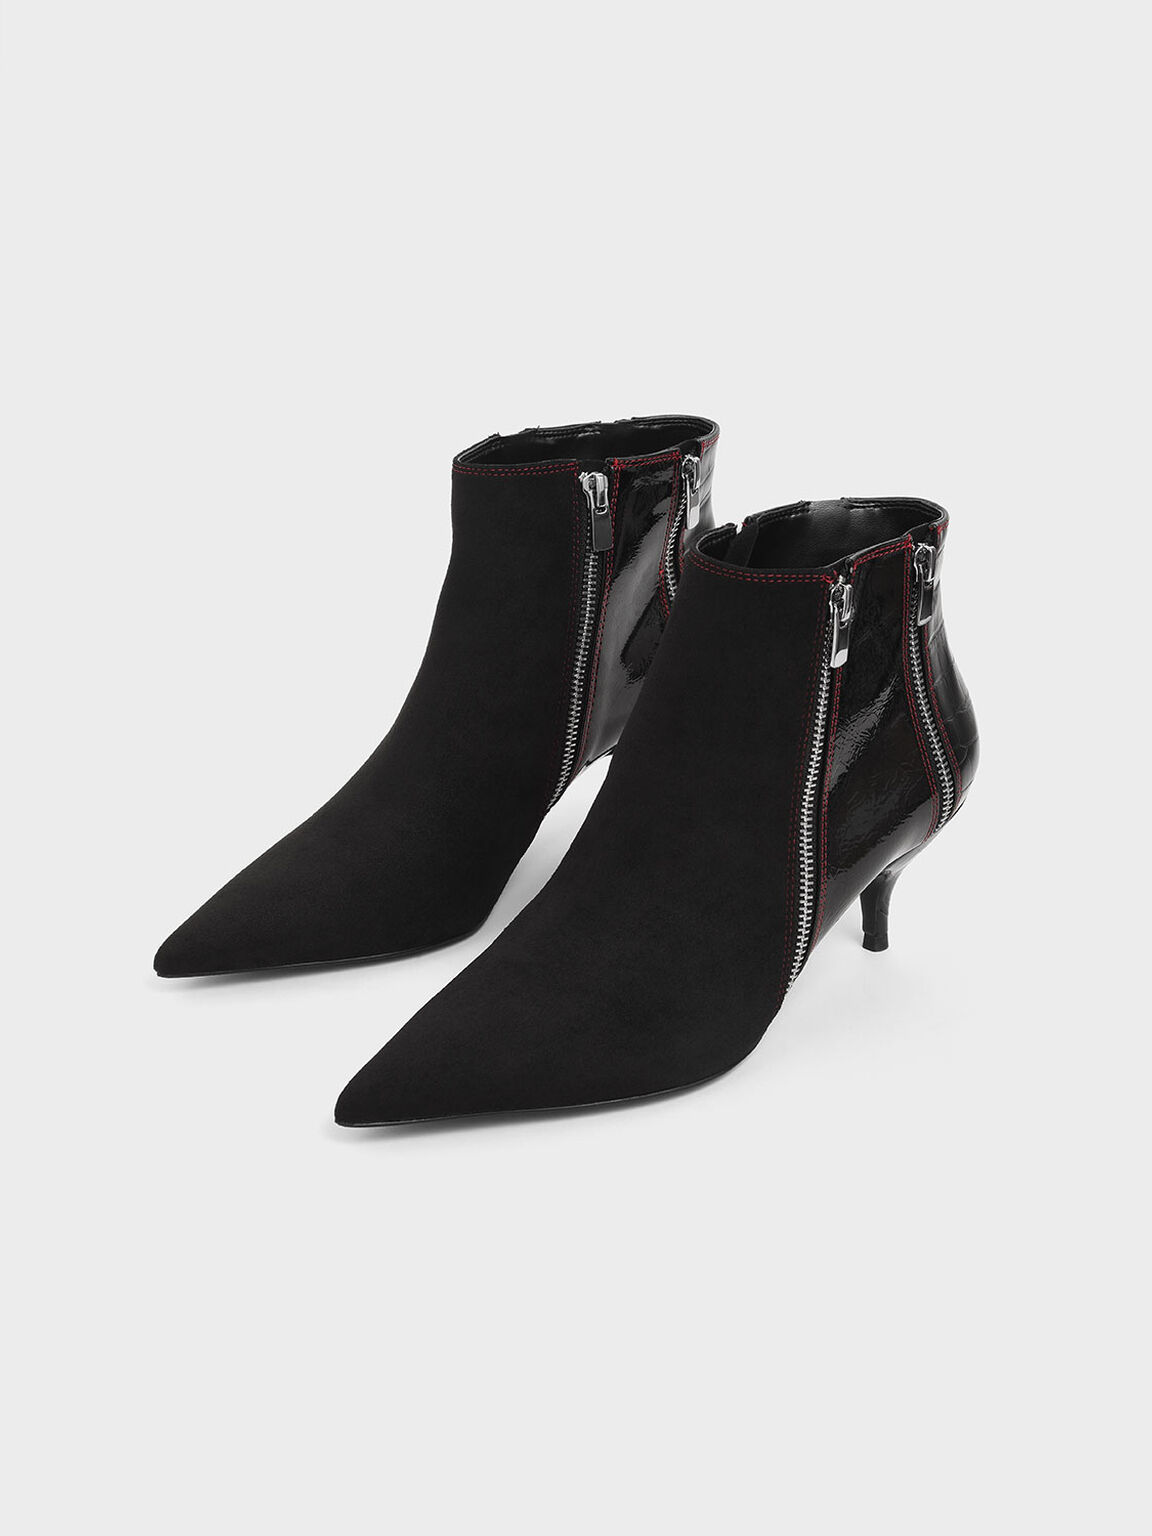 Croc-Effect Wrinkled Patent Zip-Up Kitten Heel Ankle Boots, Black, hi-res